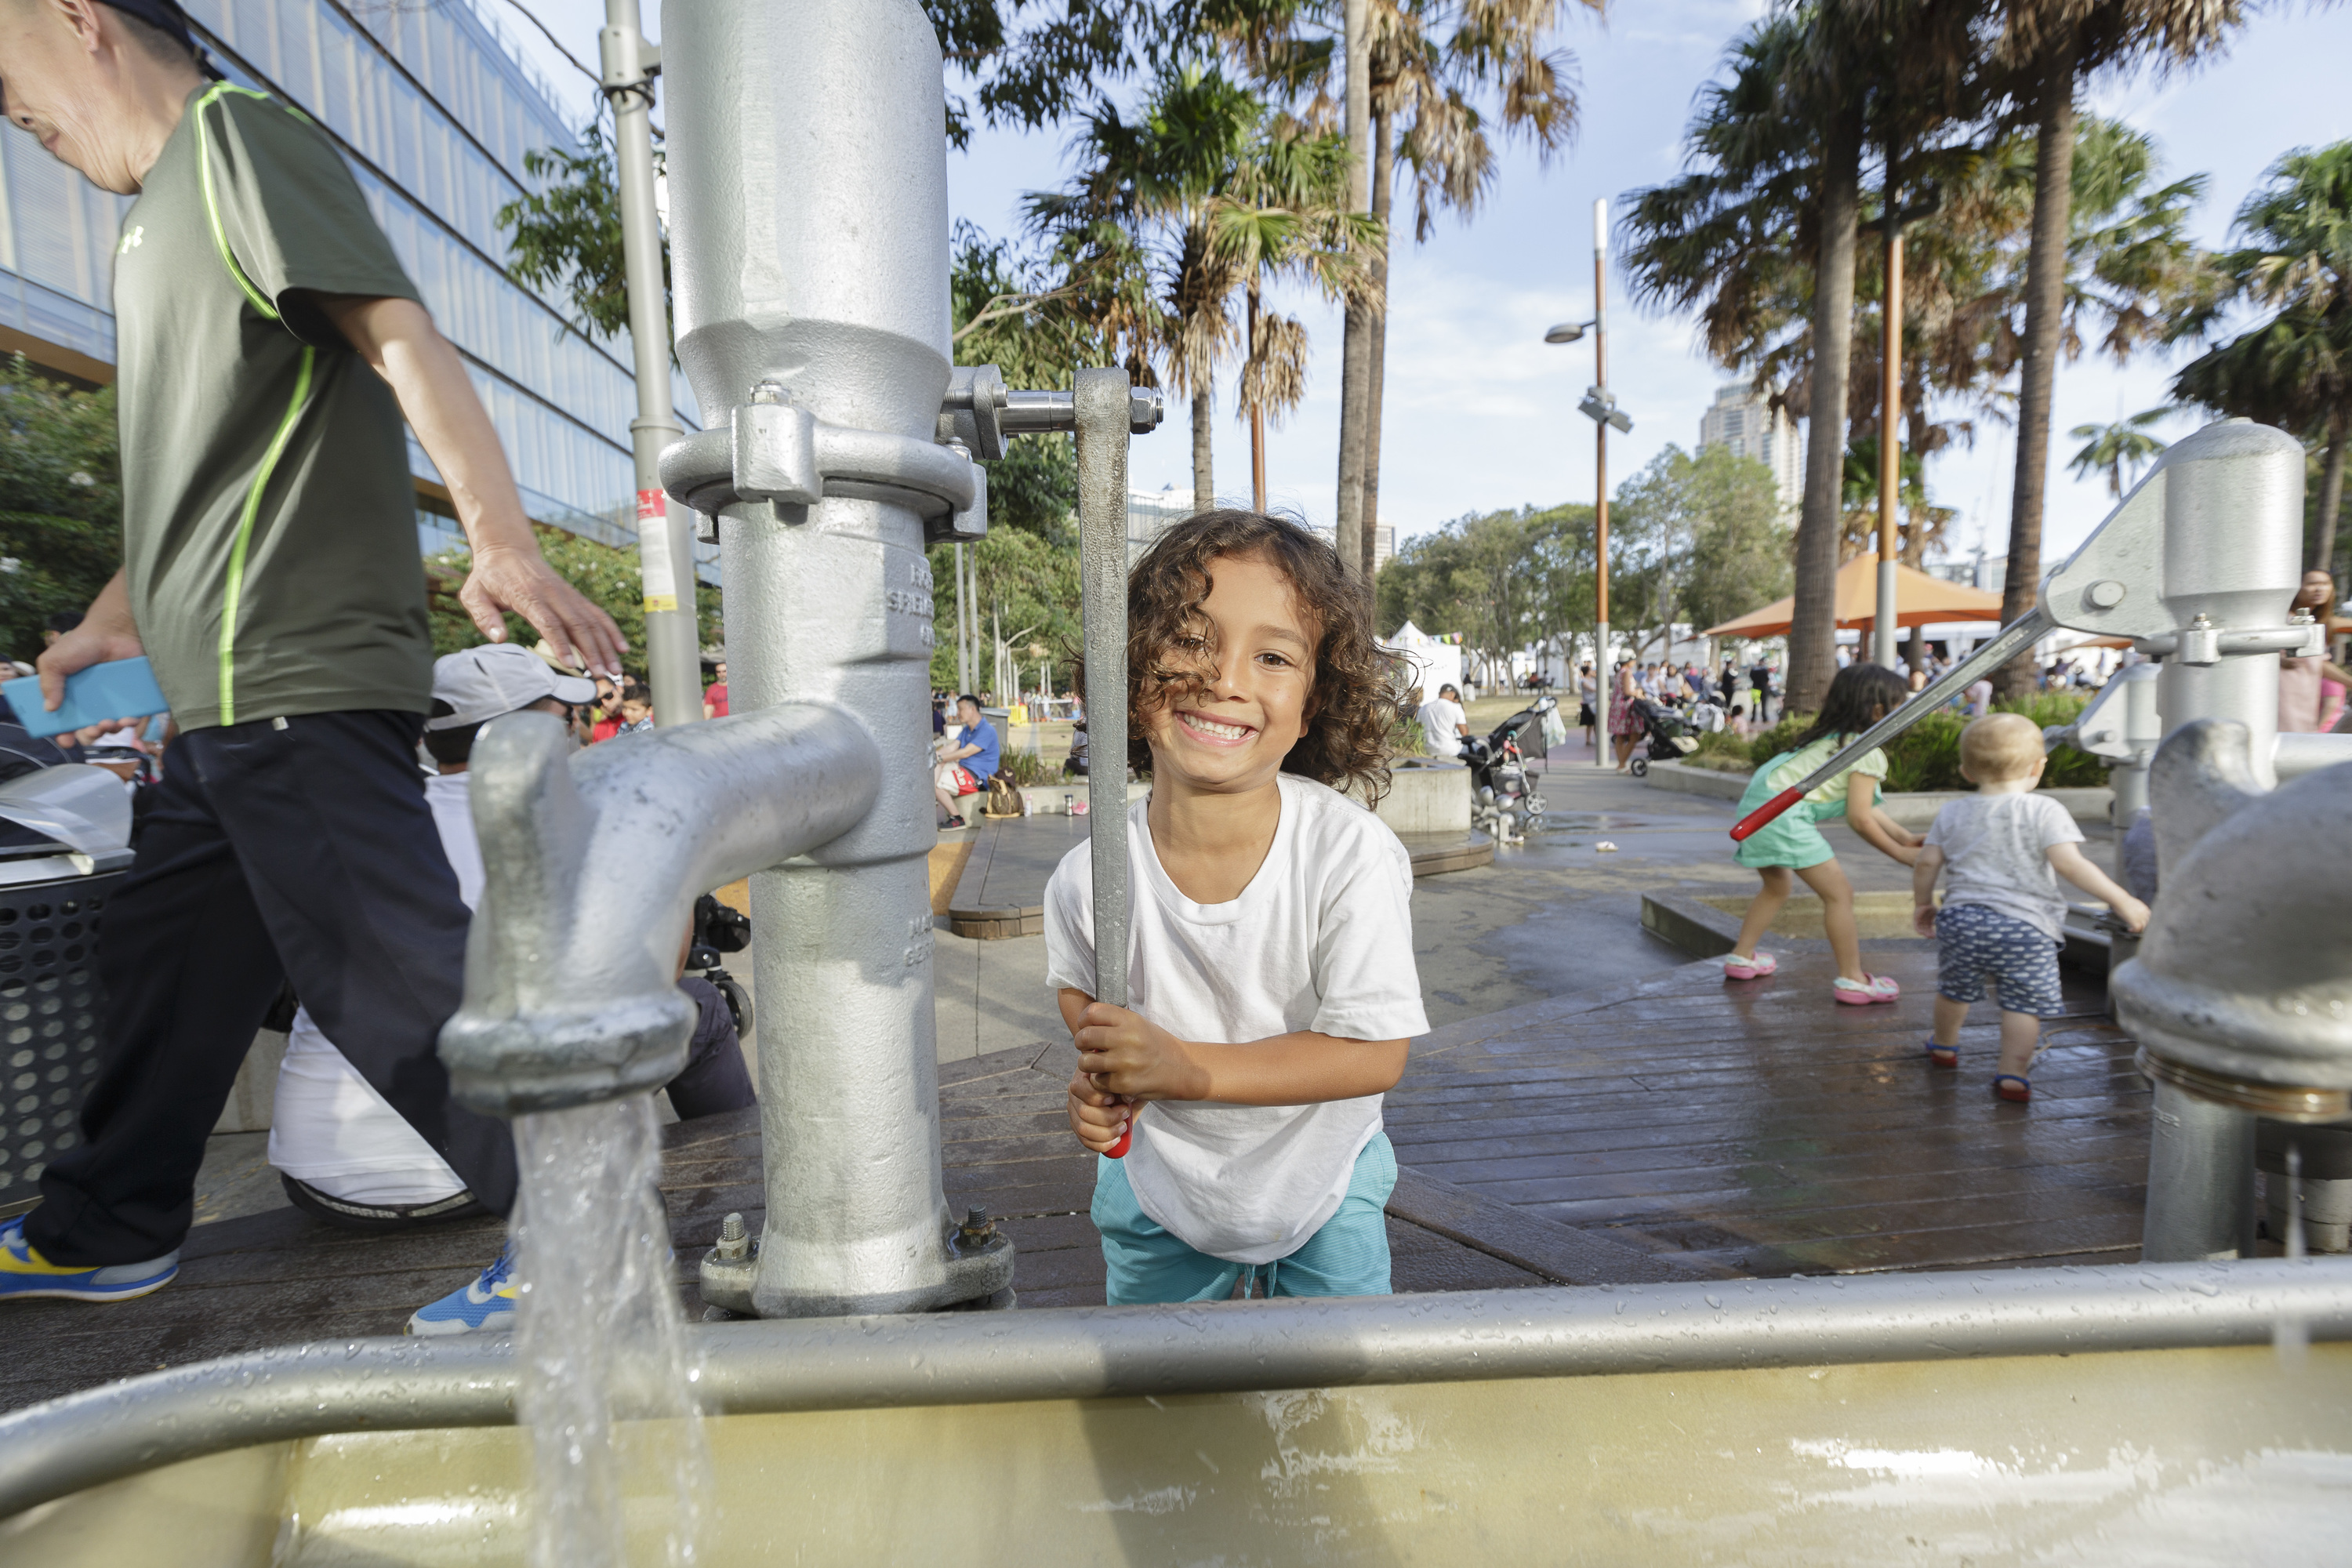 Child pumping water at the Darling Quarter playground in Sydney